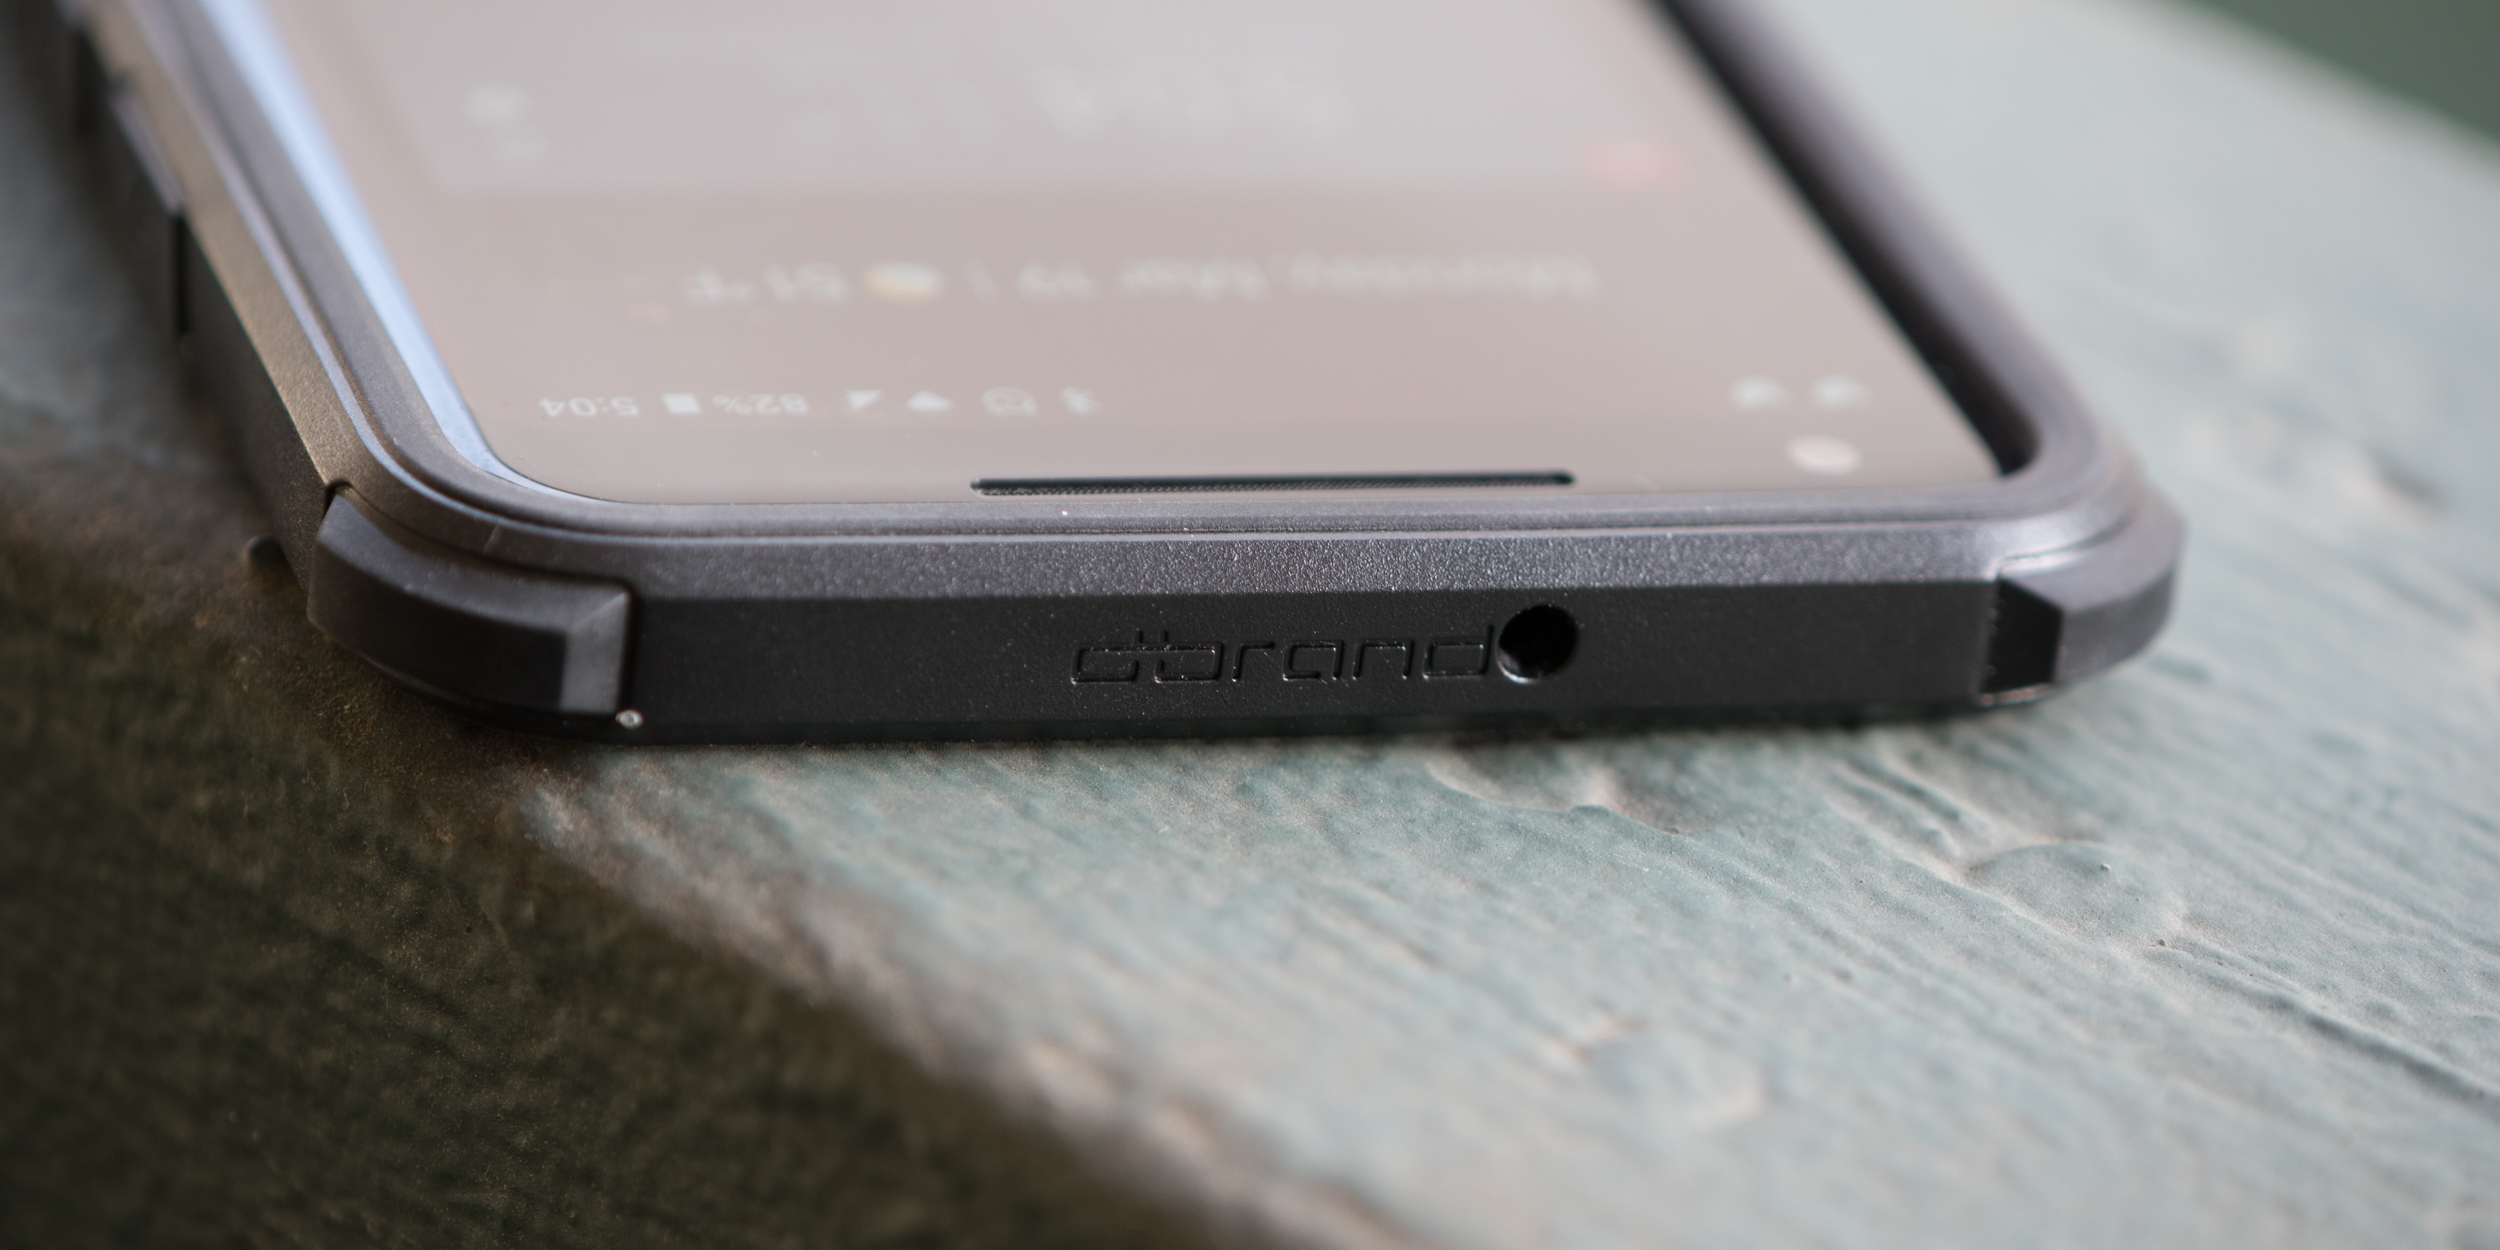 low priced 01732 046e8 Comparison: How does the dbrand Grip hold up against RhinoShield's ...